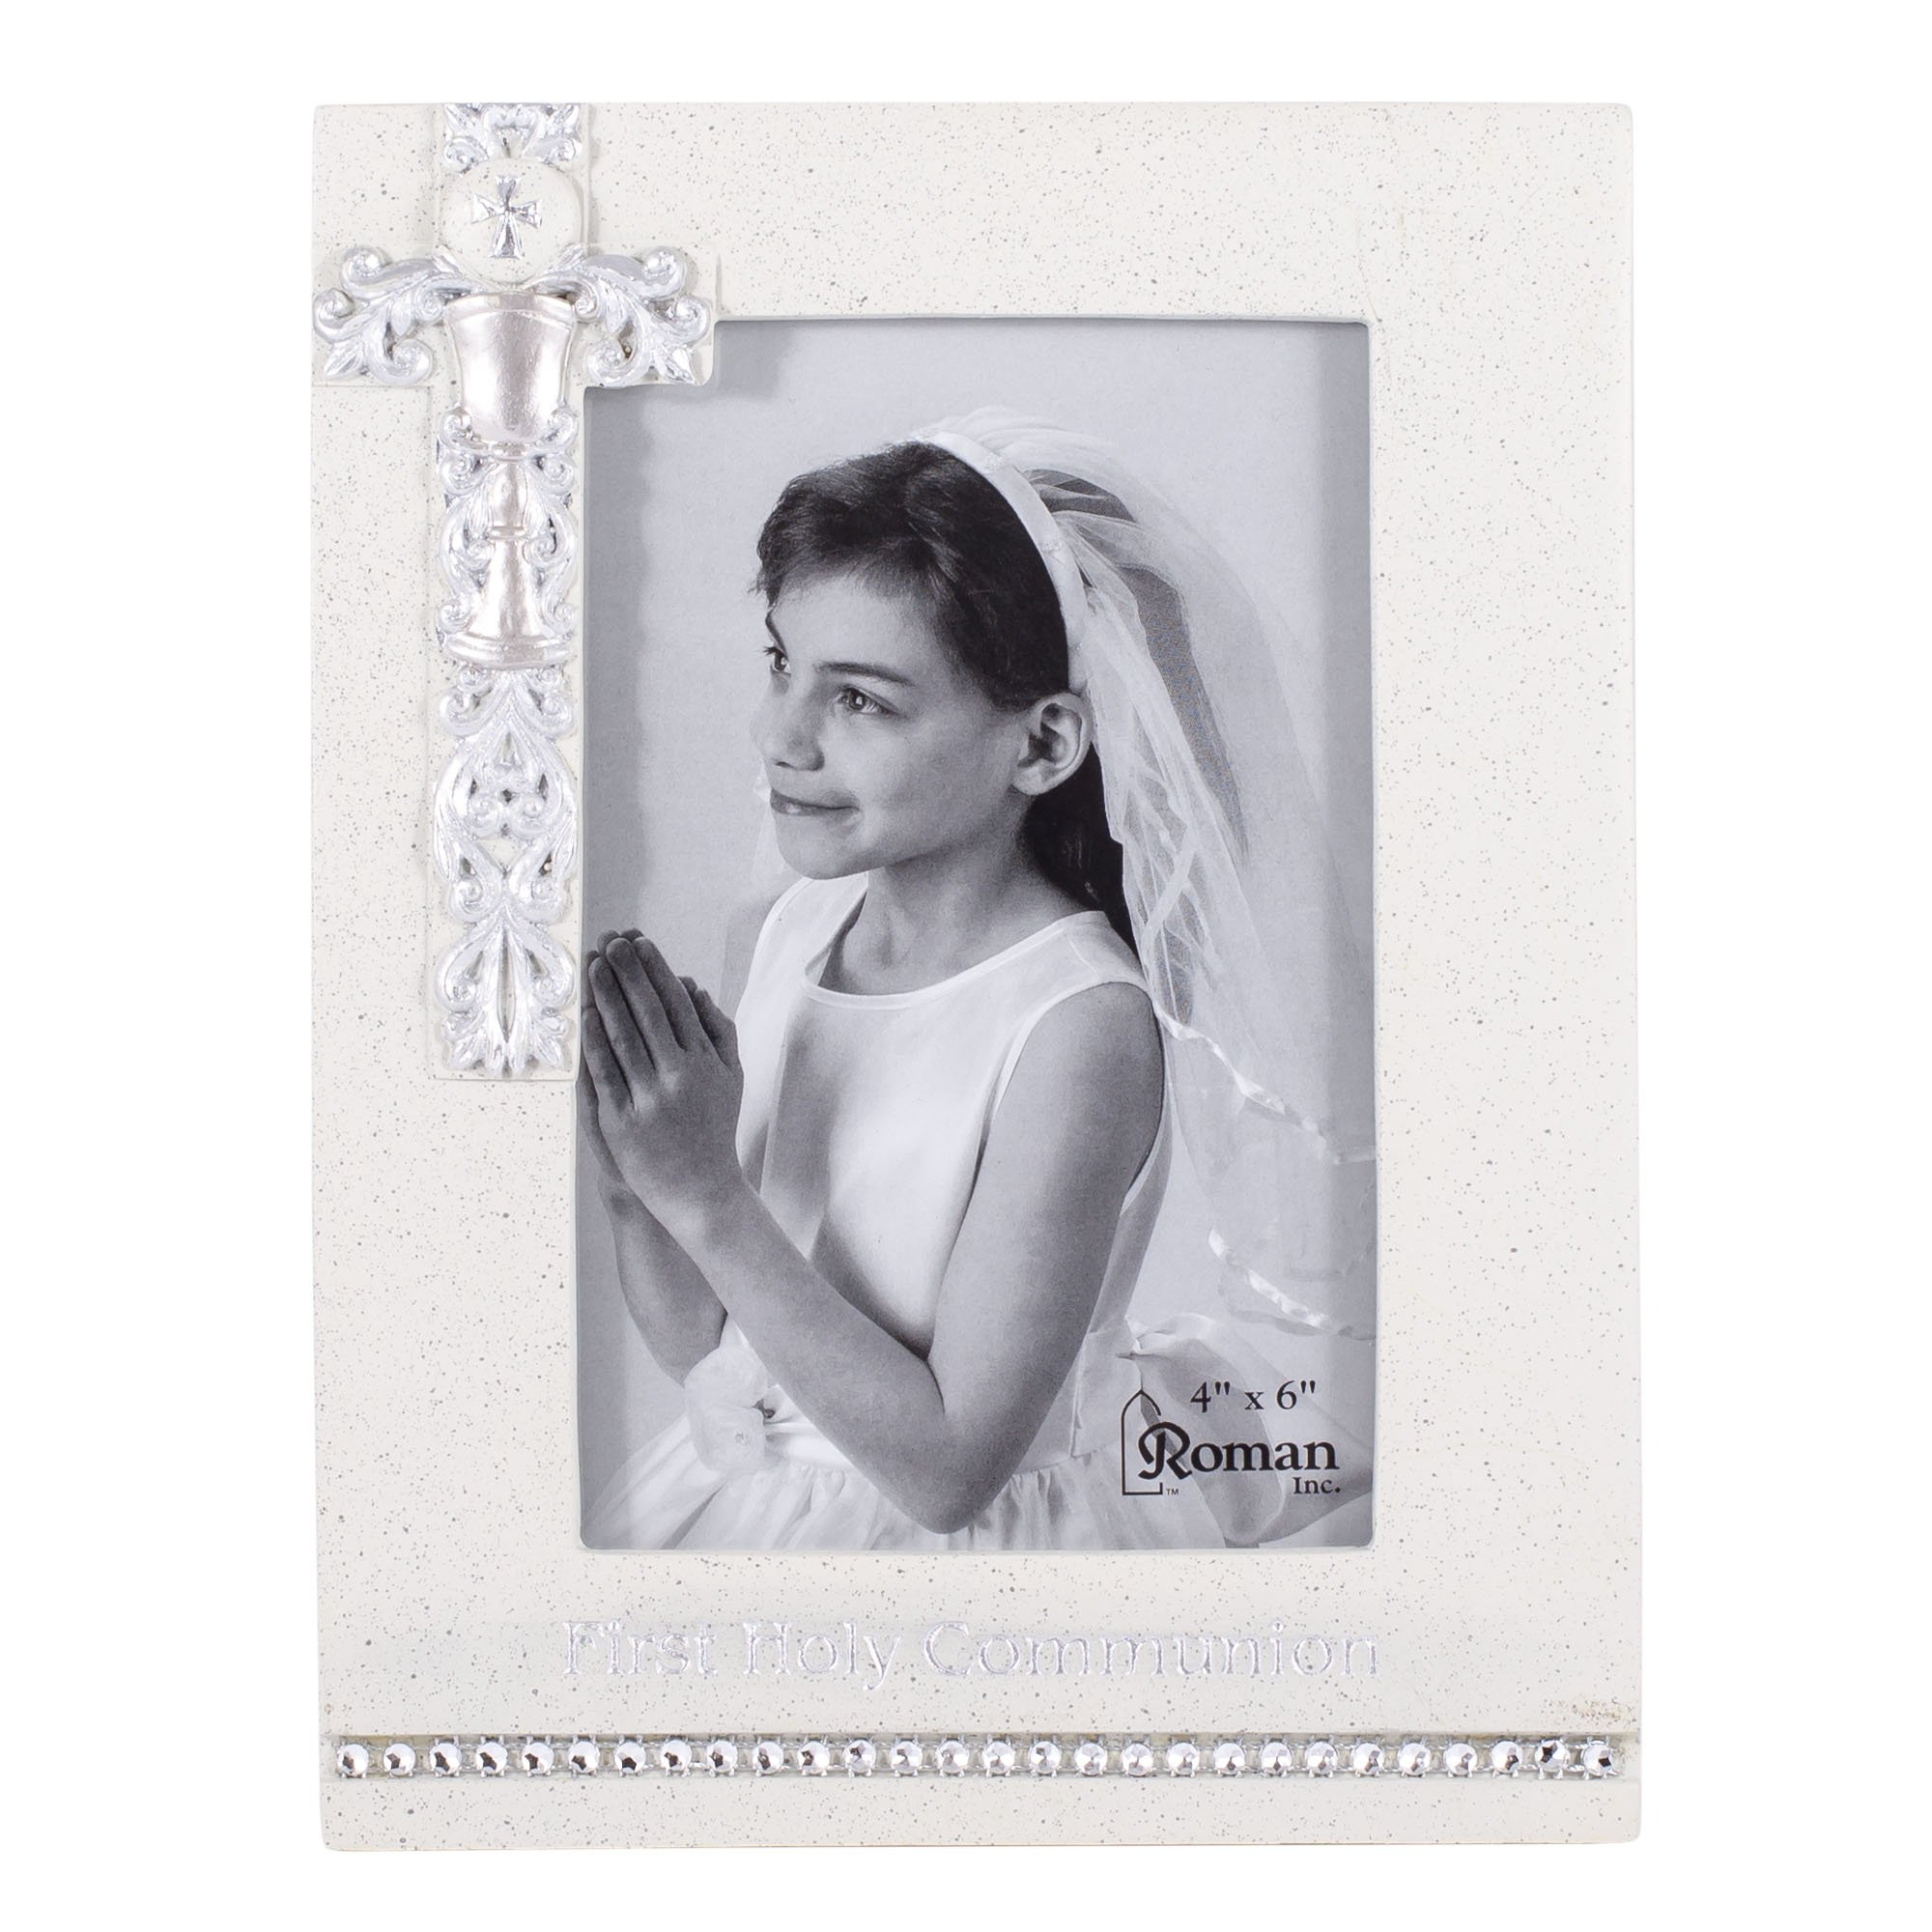 Amazon.com : Roman Inc. First Communion Frame 4x6 * Confirmation ...